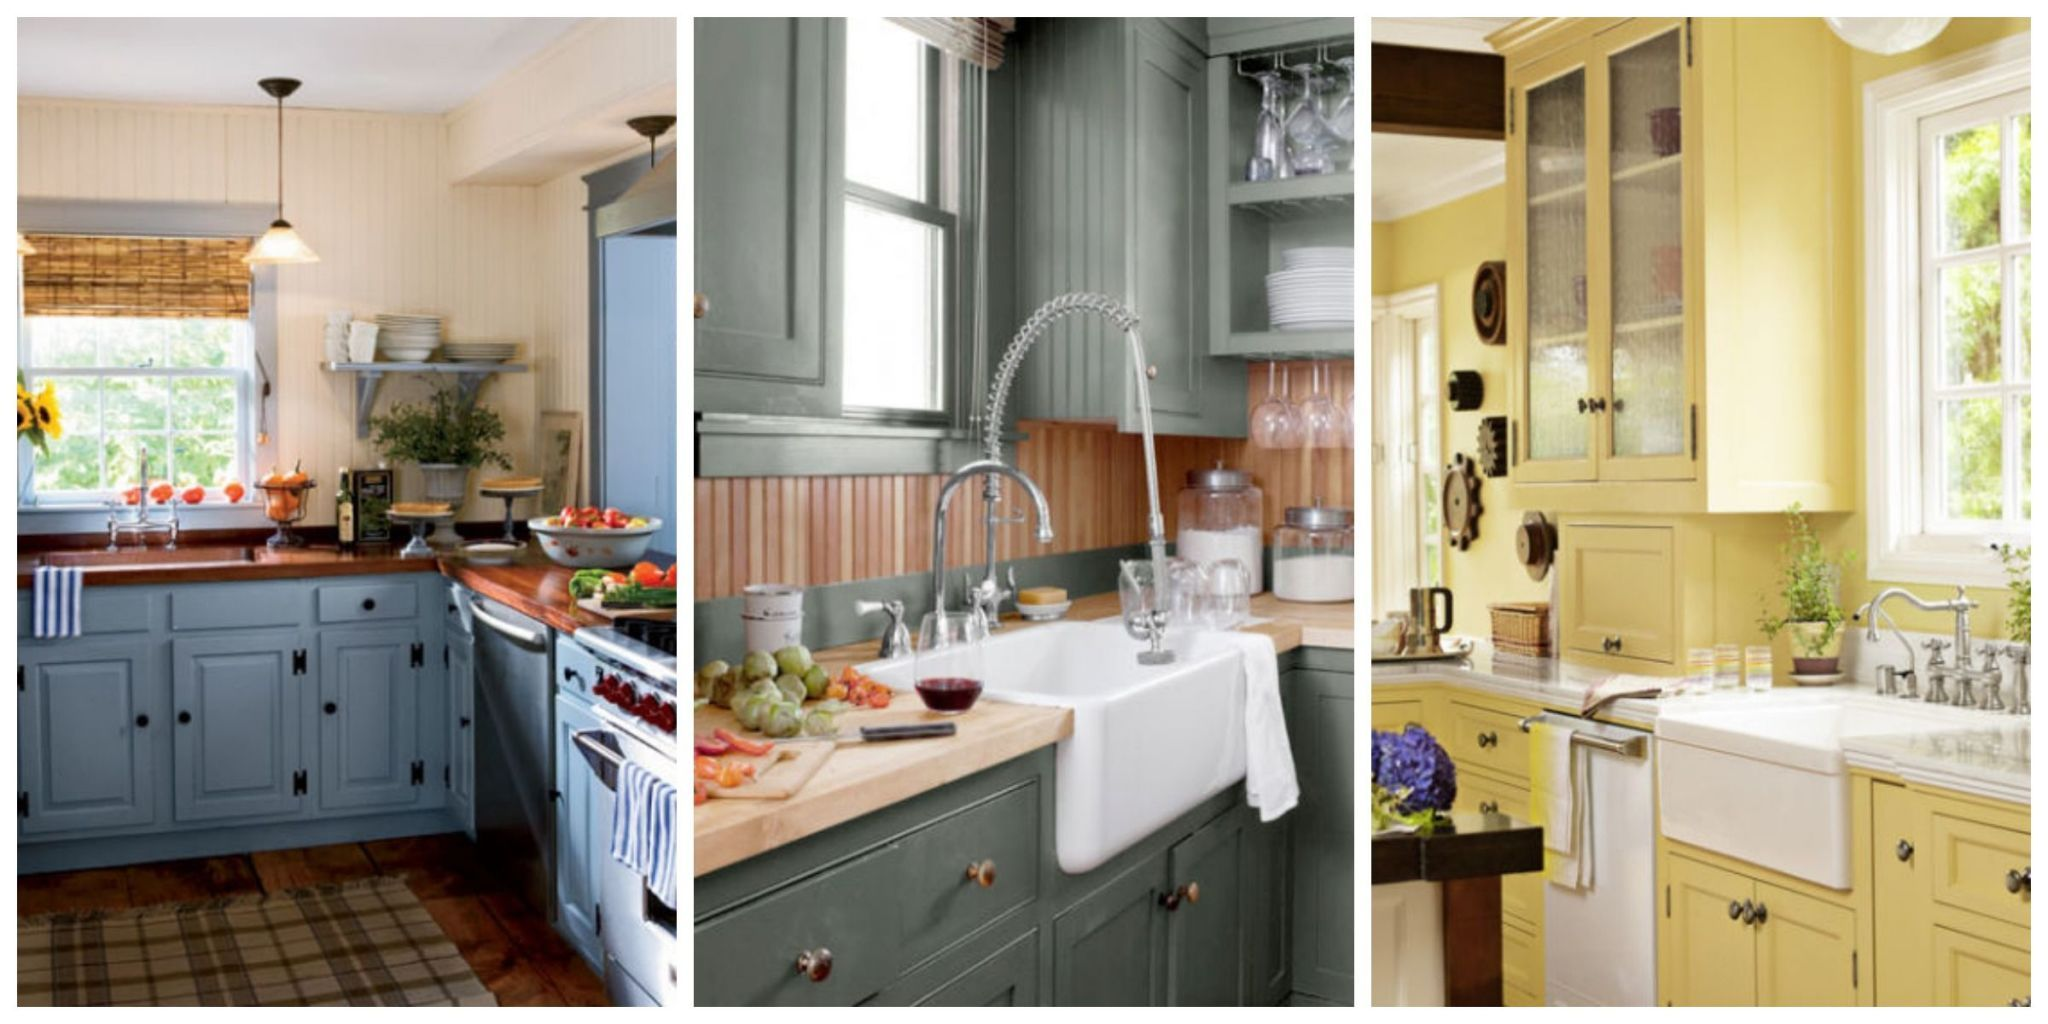 Wonderful Create A Beautiful And Colorful Kitchen With These Paint And Decorating  Ideas. Also, Check Out These 100+ Kitchen Design Ideas For More Inspiration.